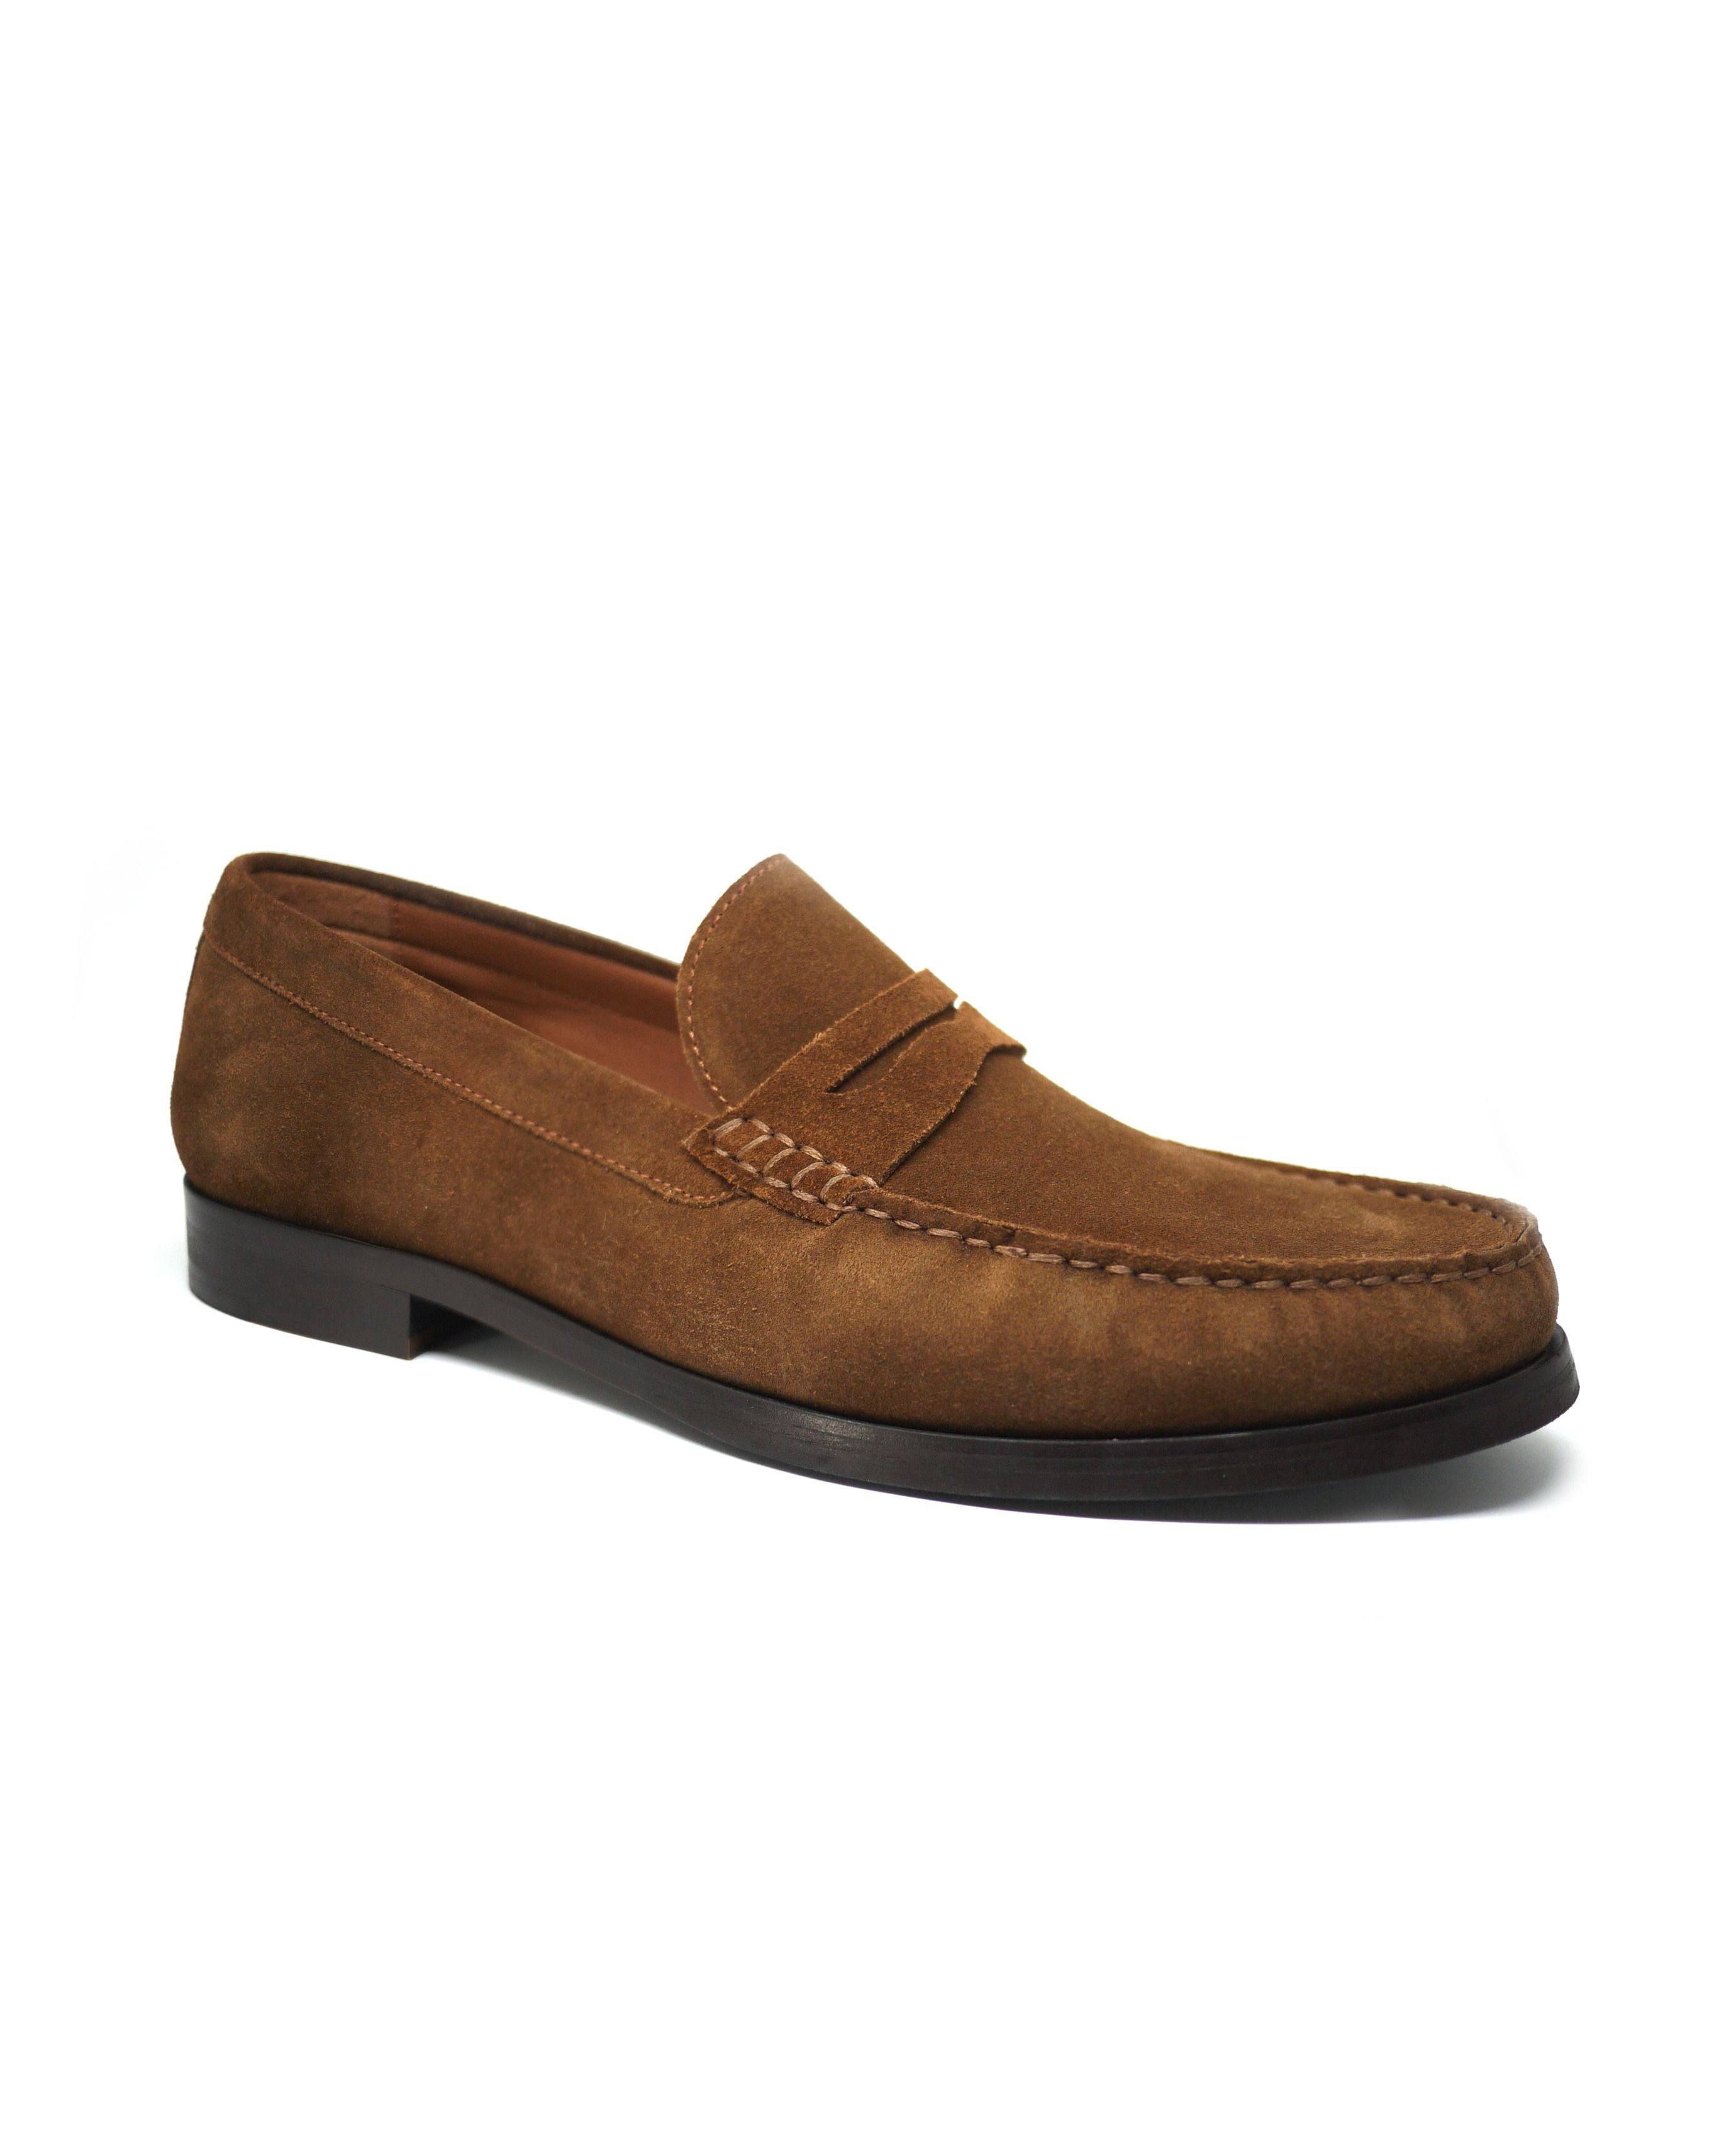 Men's light brown suede loafers